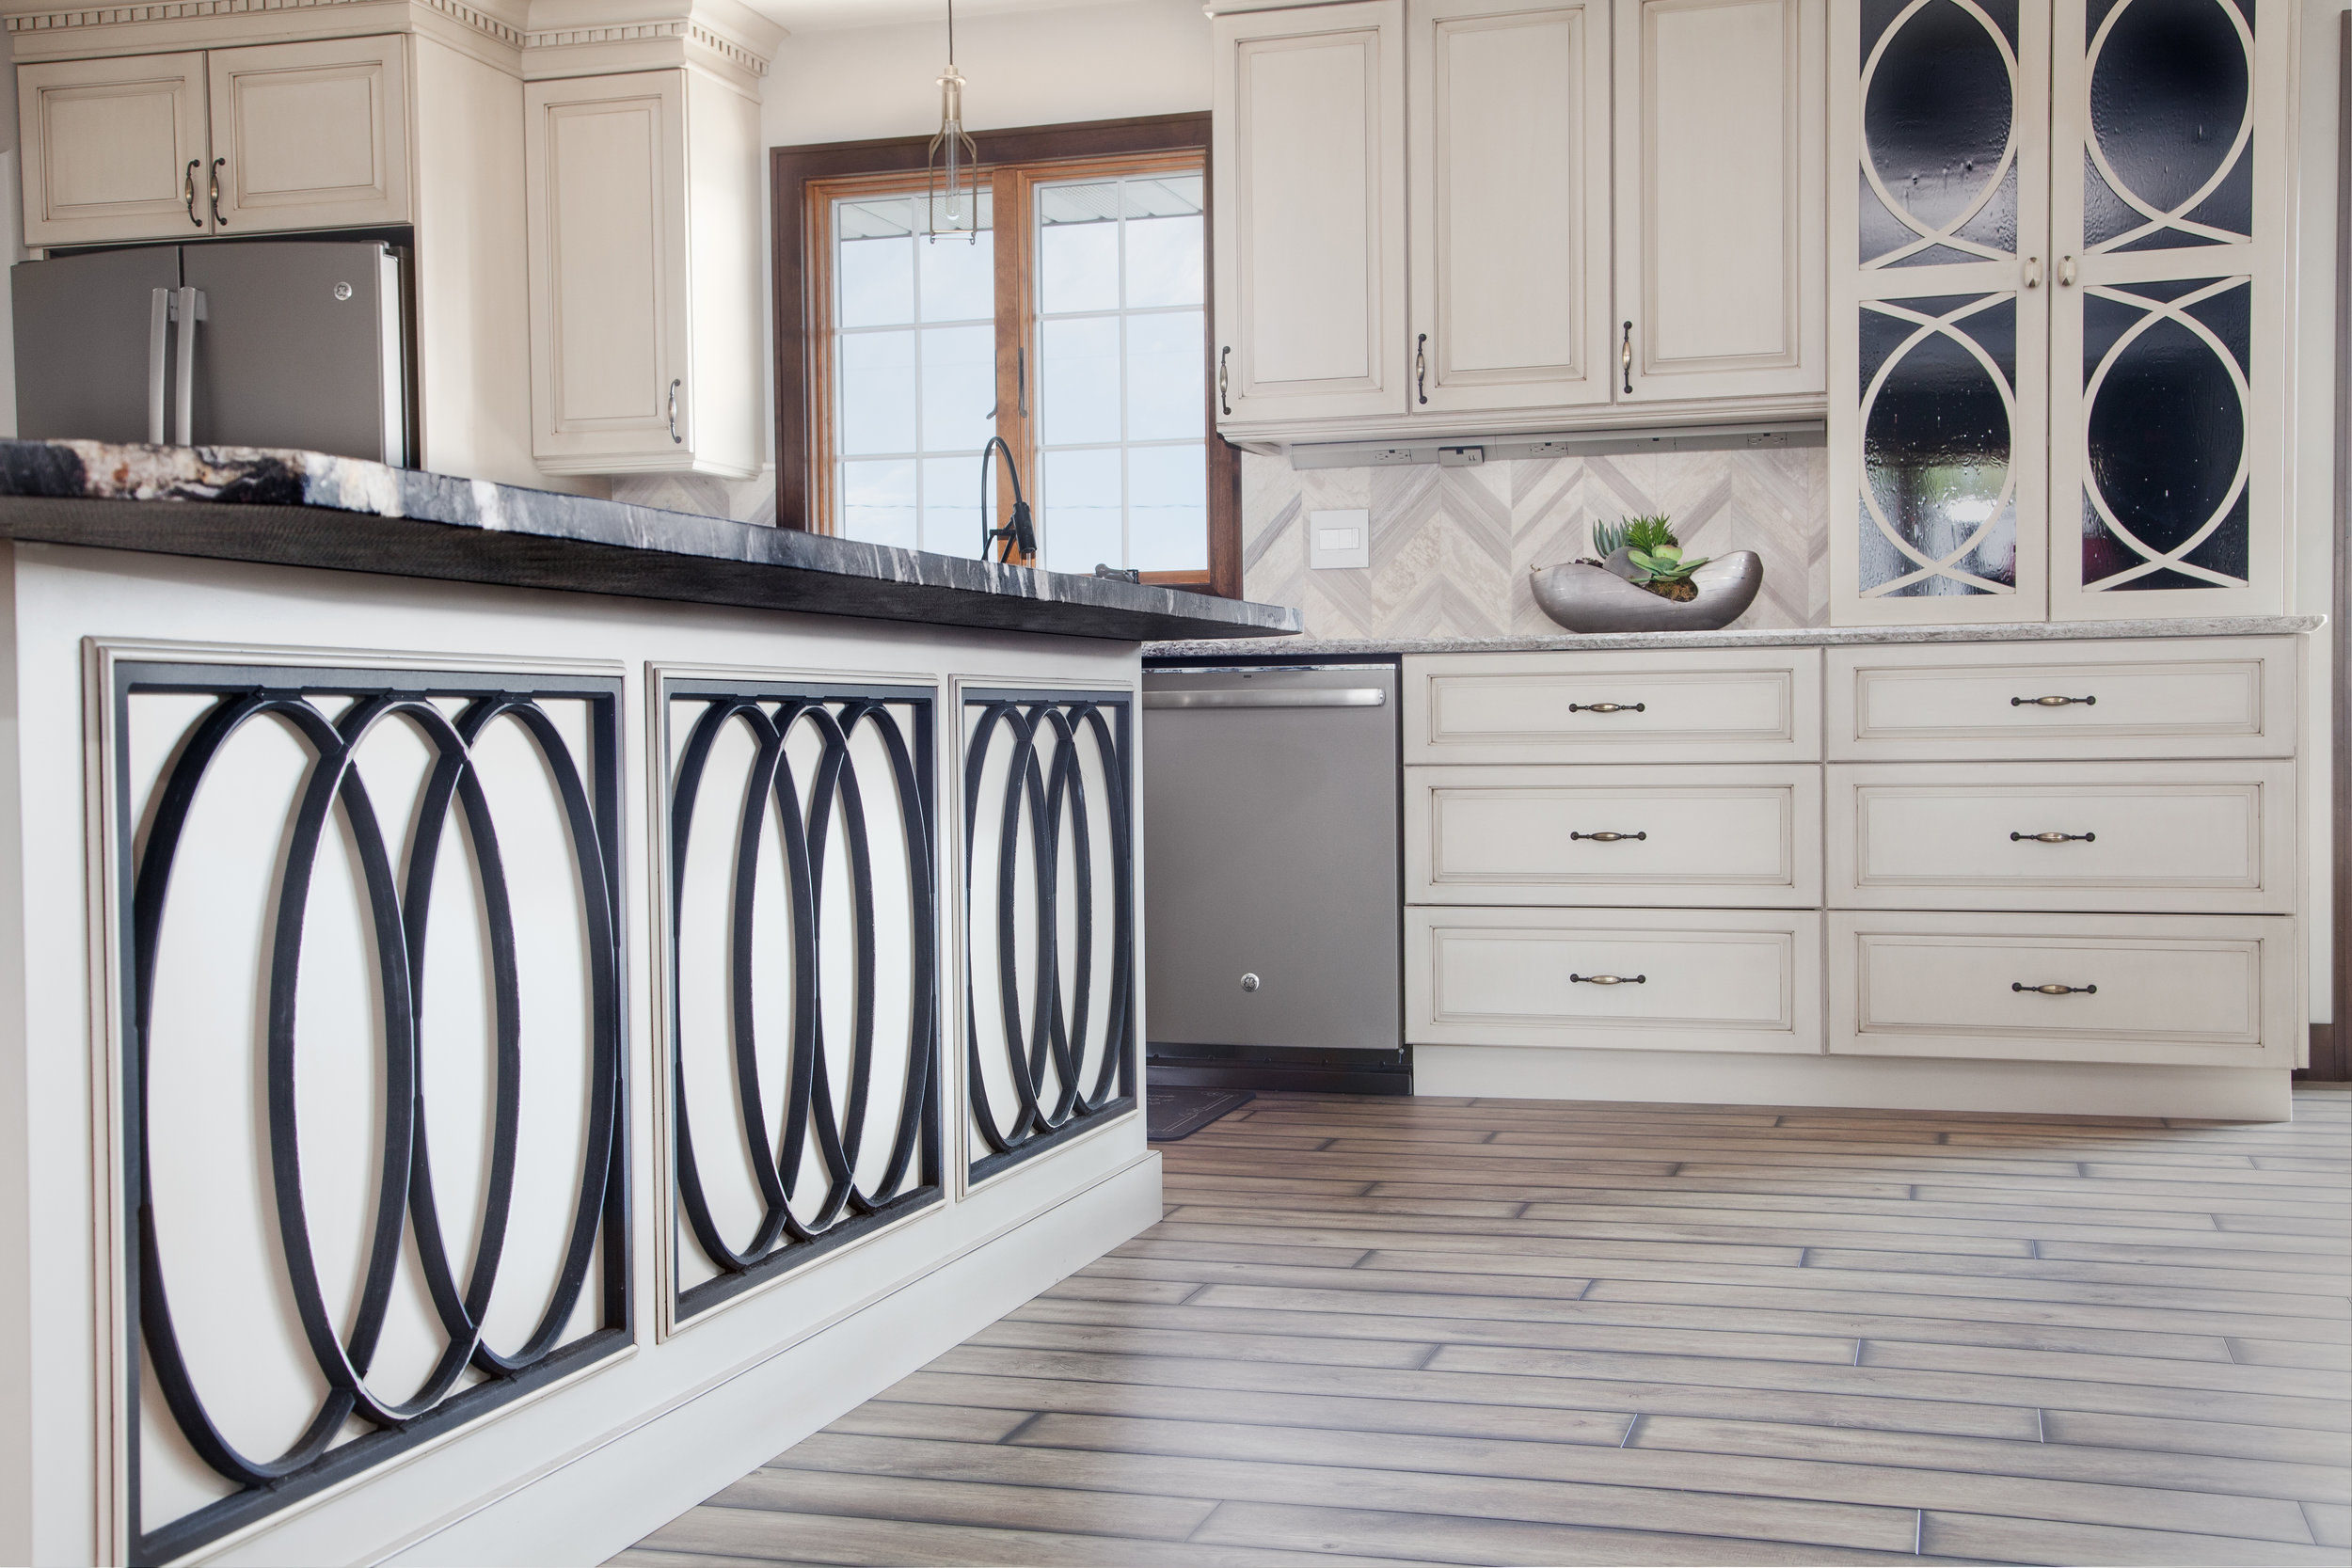 Transitional Style Kitchen | Tableaux Grile Chevron Backsplash